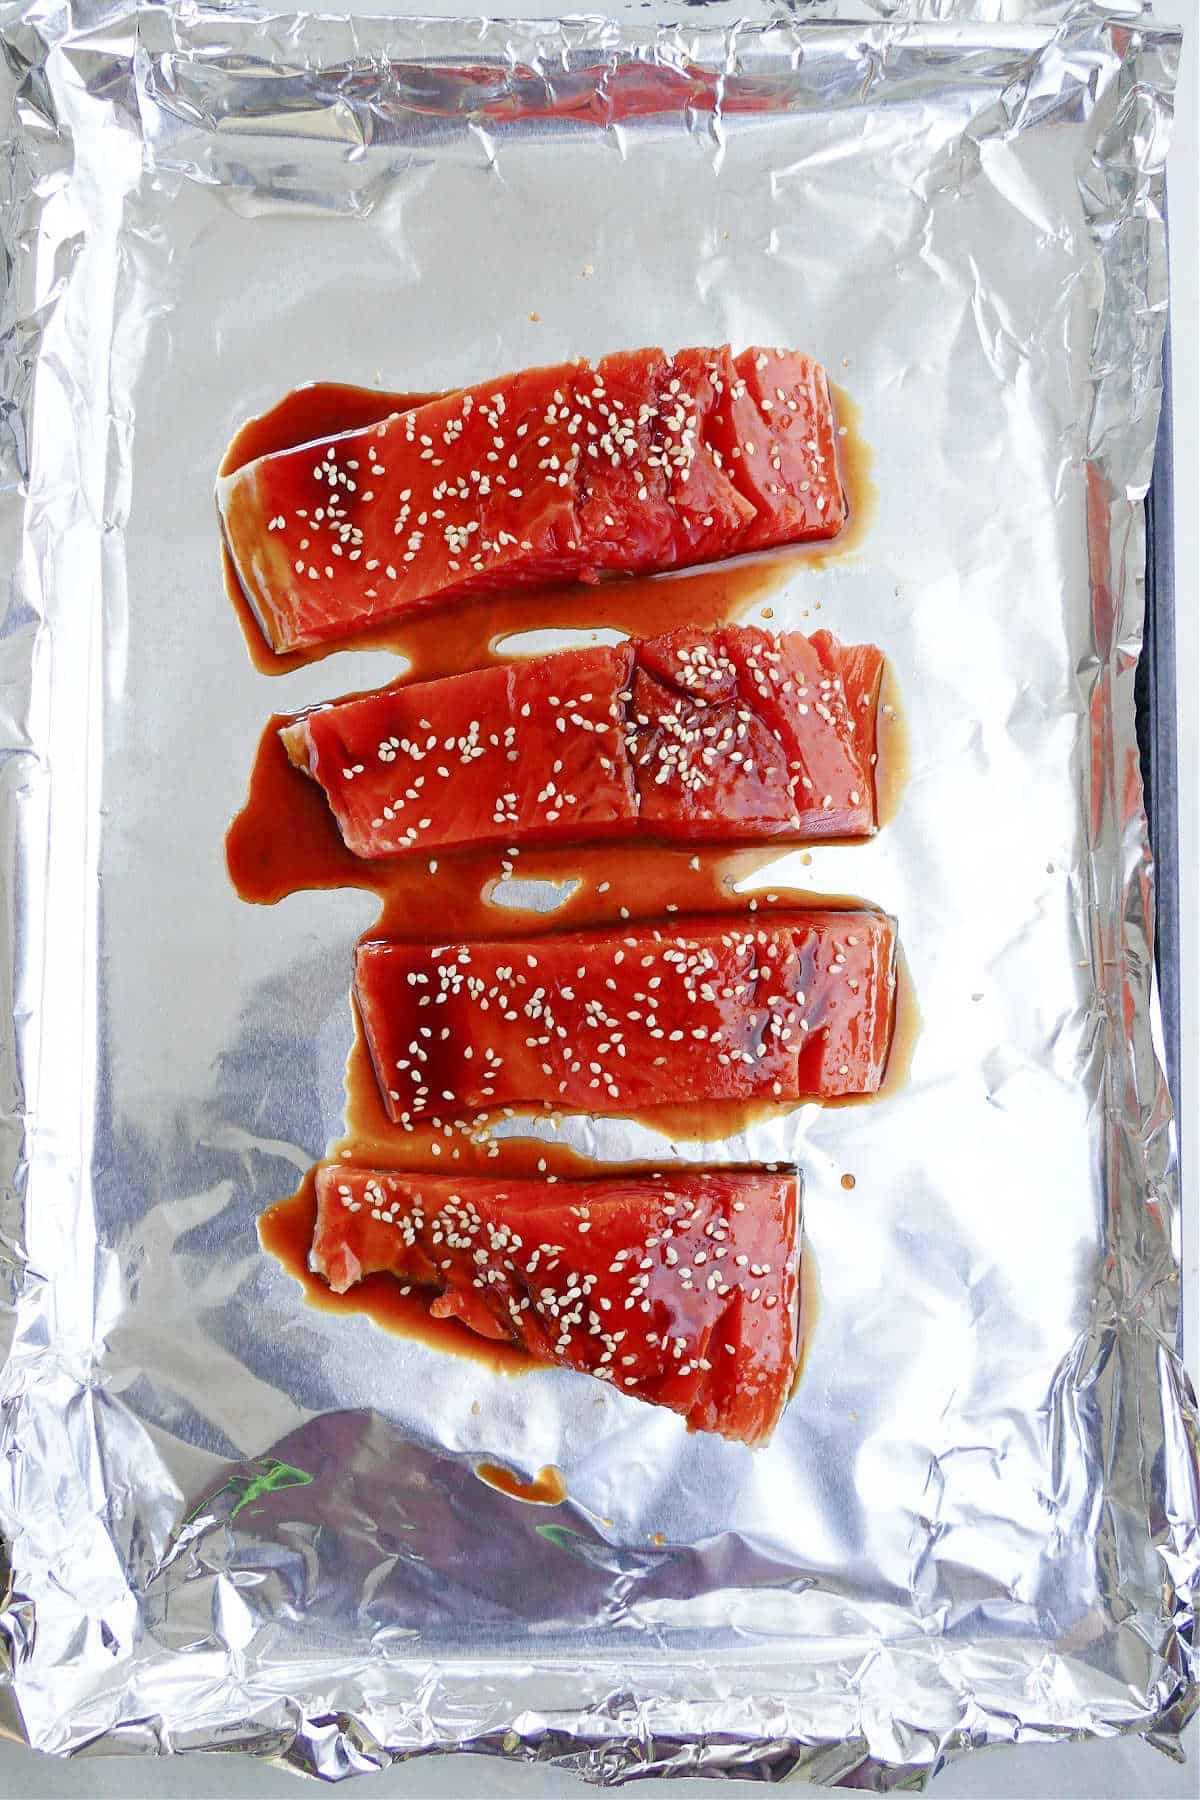 four salmon fillets spread with teriyaki sauce and topped with sesame seeds on a foil lined baking sheet